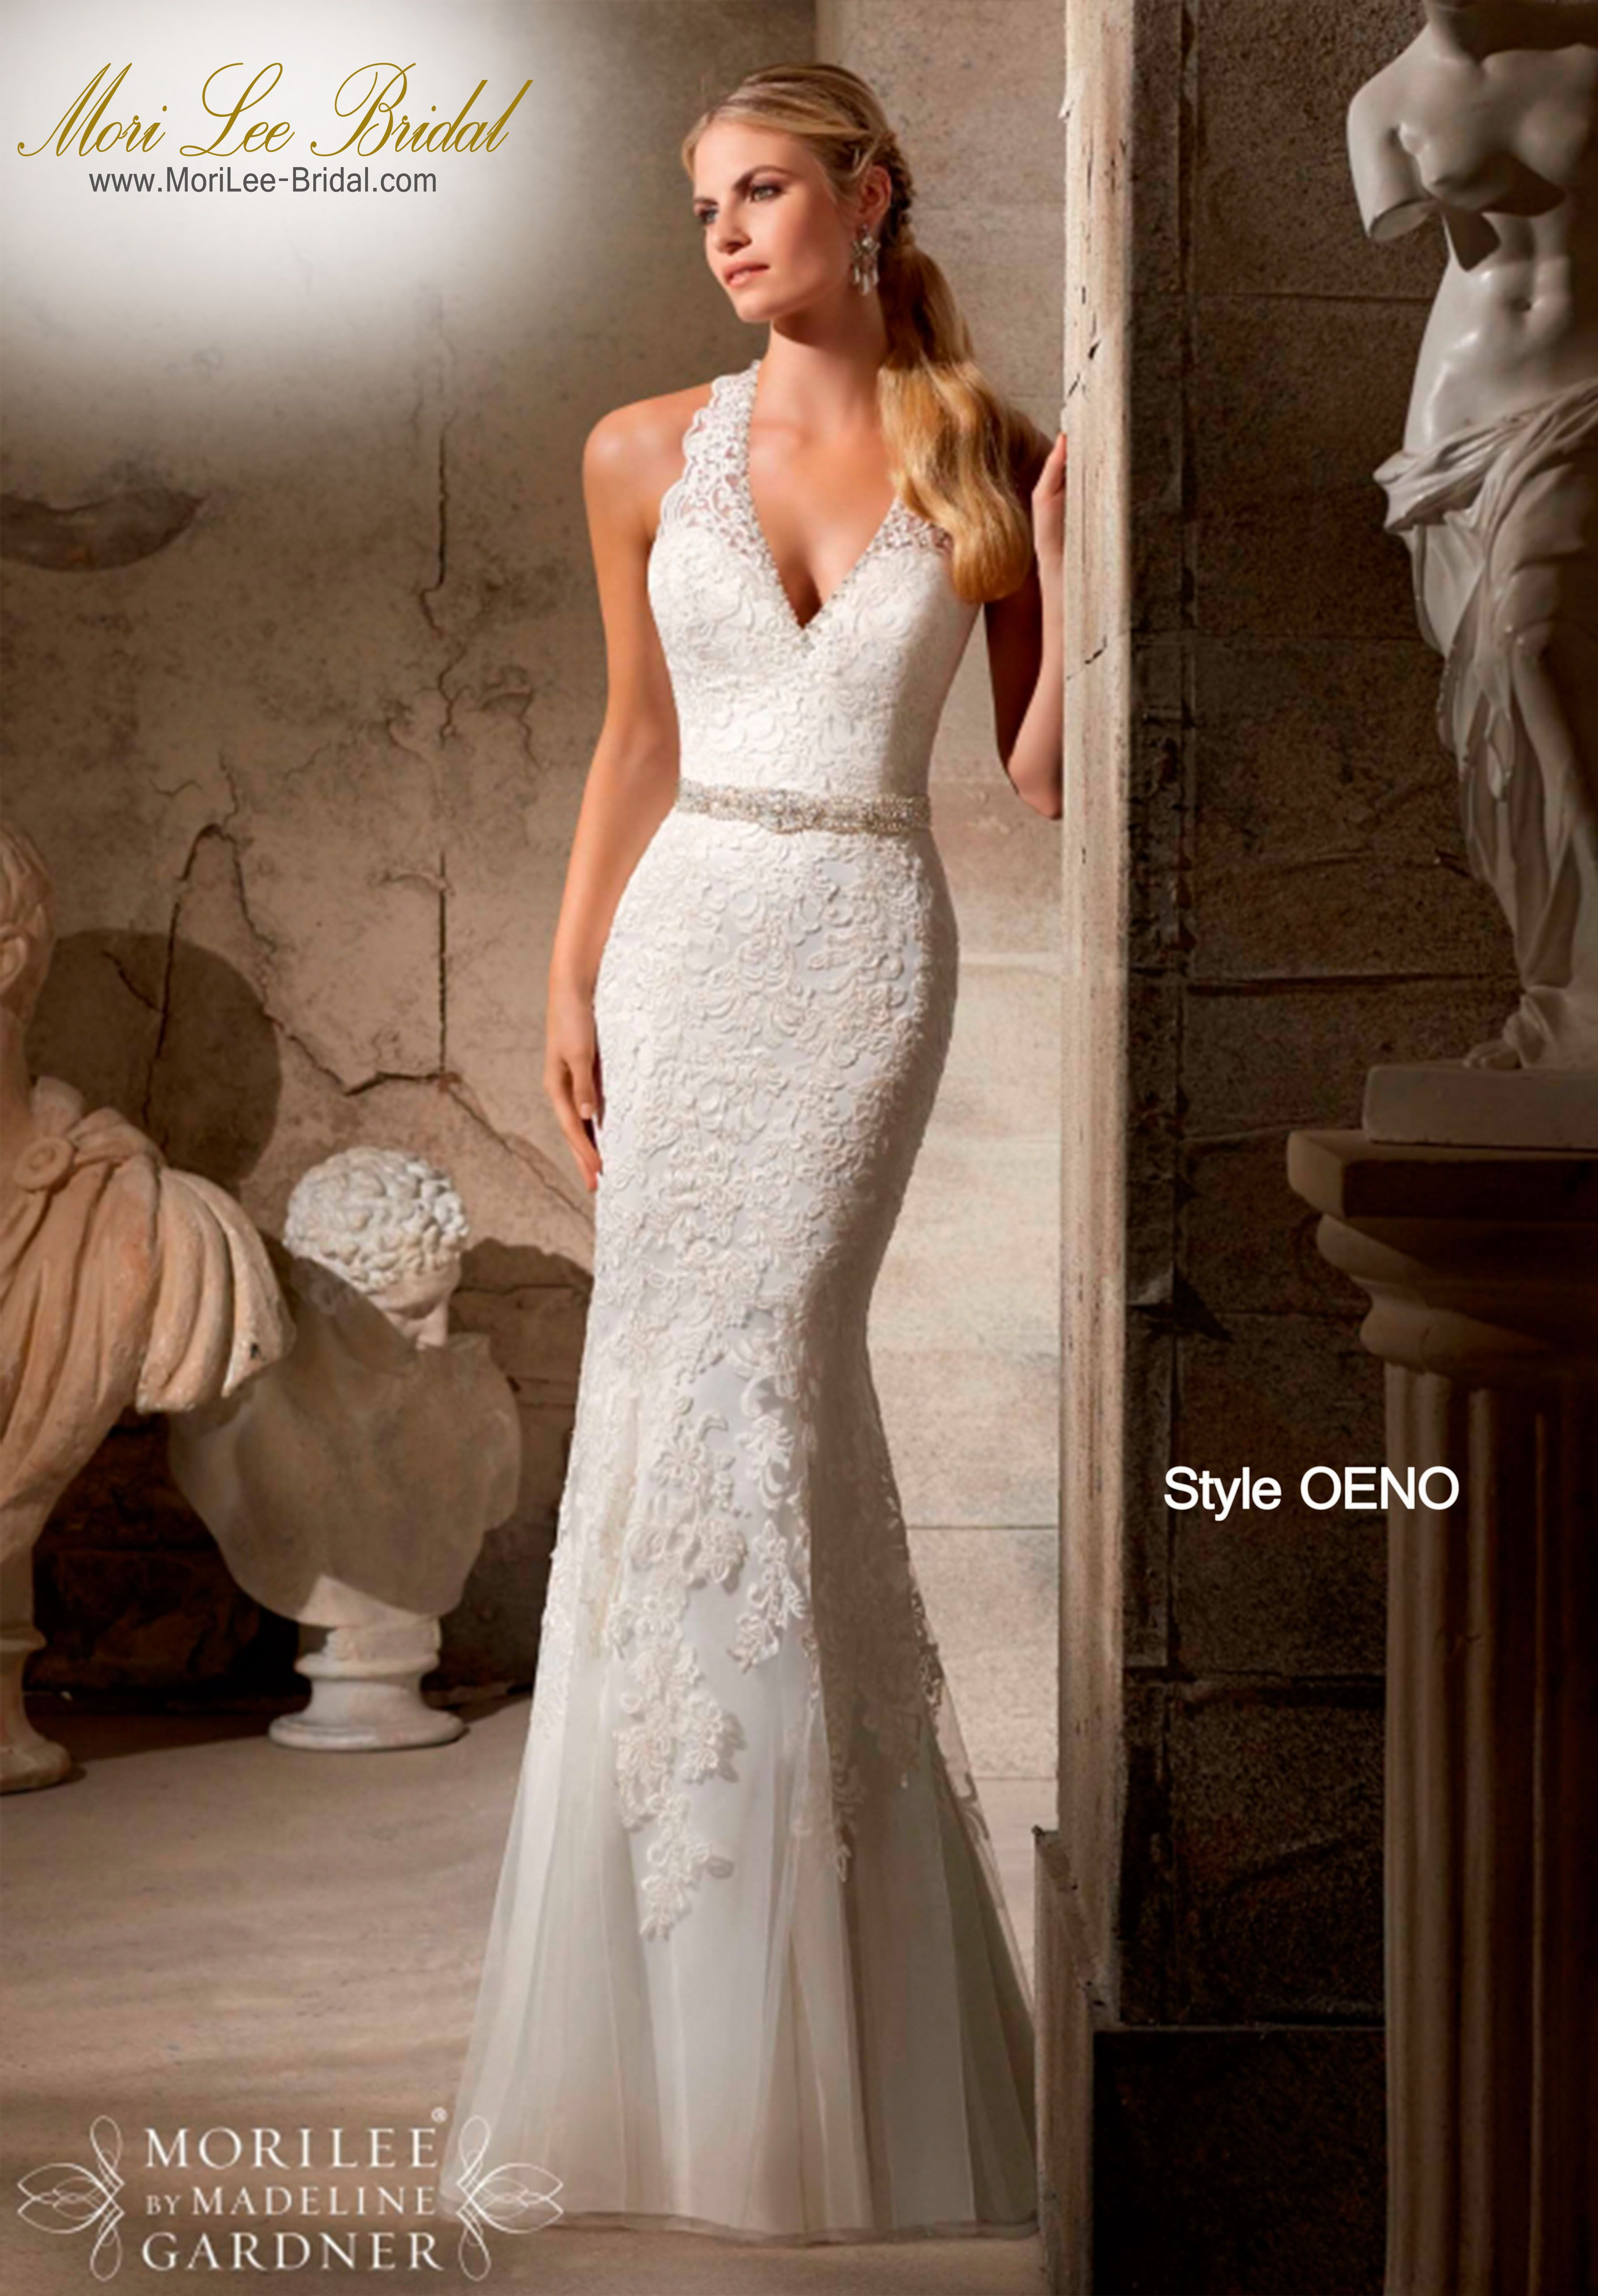 Mori lee wedding dresses discontinued styles  Style OENO EMBROIDERED APPLIQUES ON SOFT NET TRIMMED WITH CRYSTAL